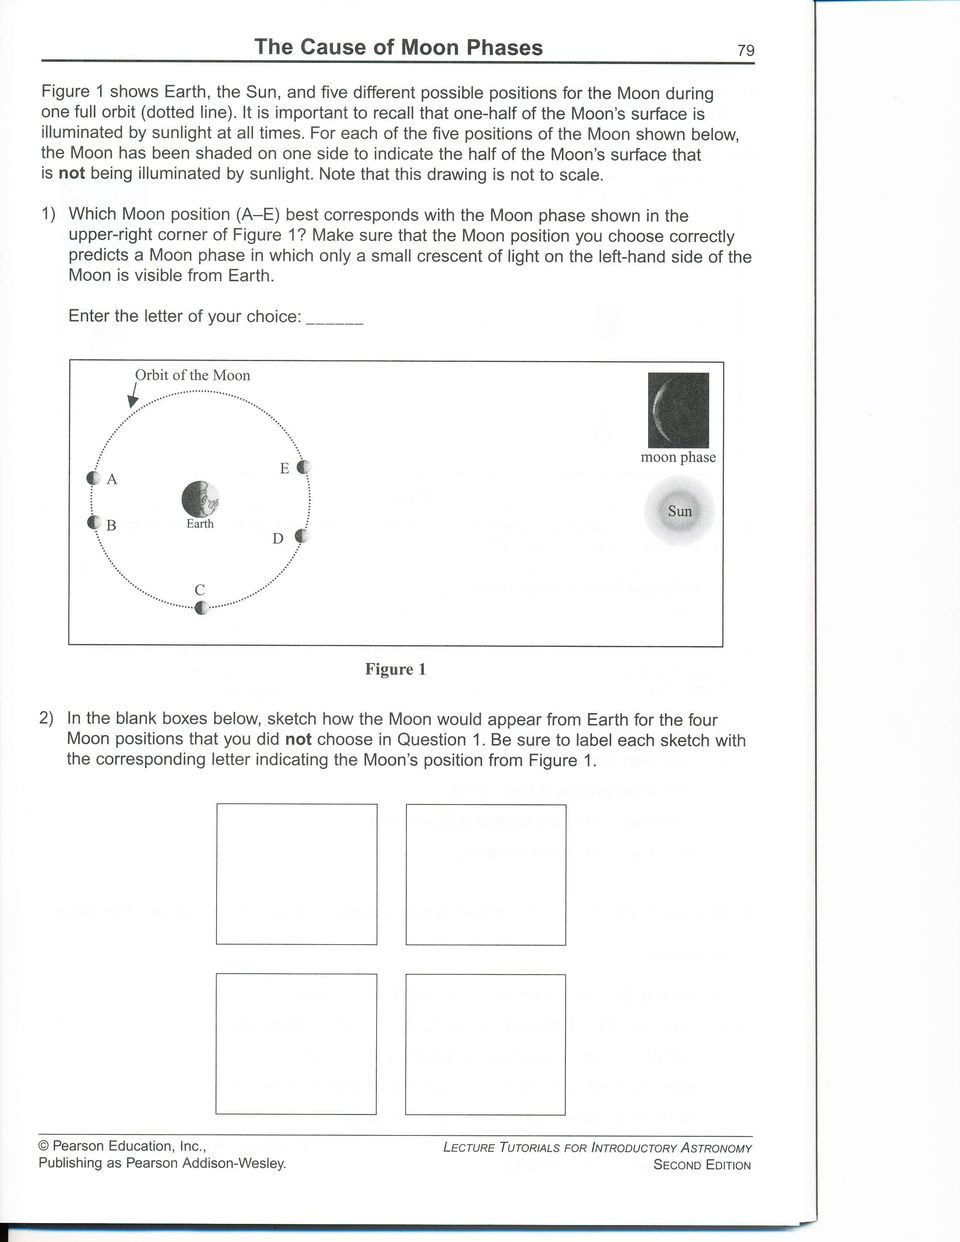 Moon Phases Worksheet Pdf Ffi the Cause Of Moon Phases Pdf Free Download